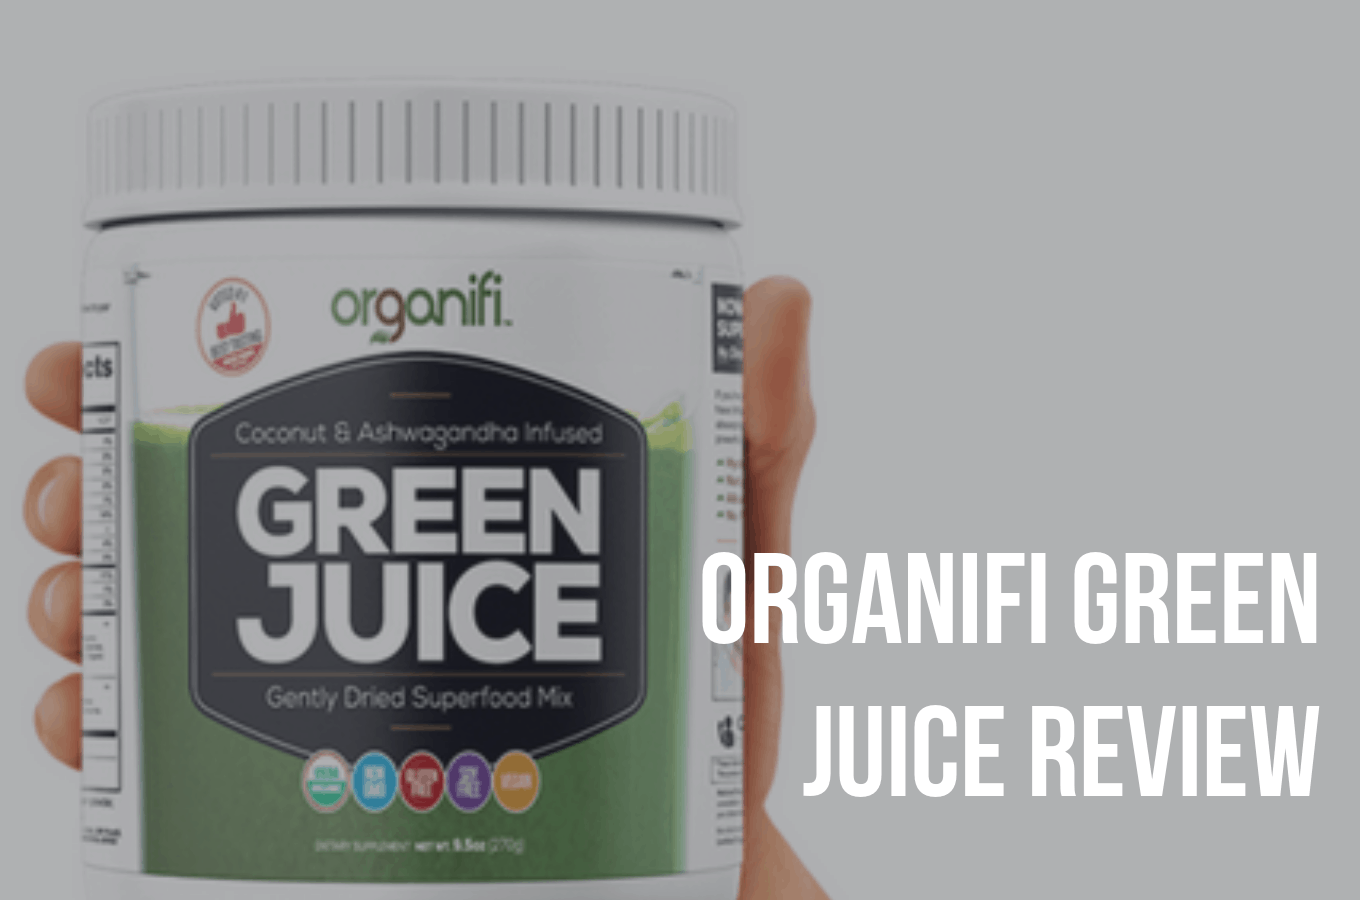 Organifi Green Juice Review